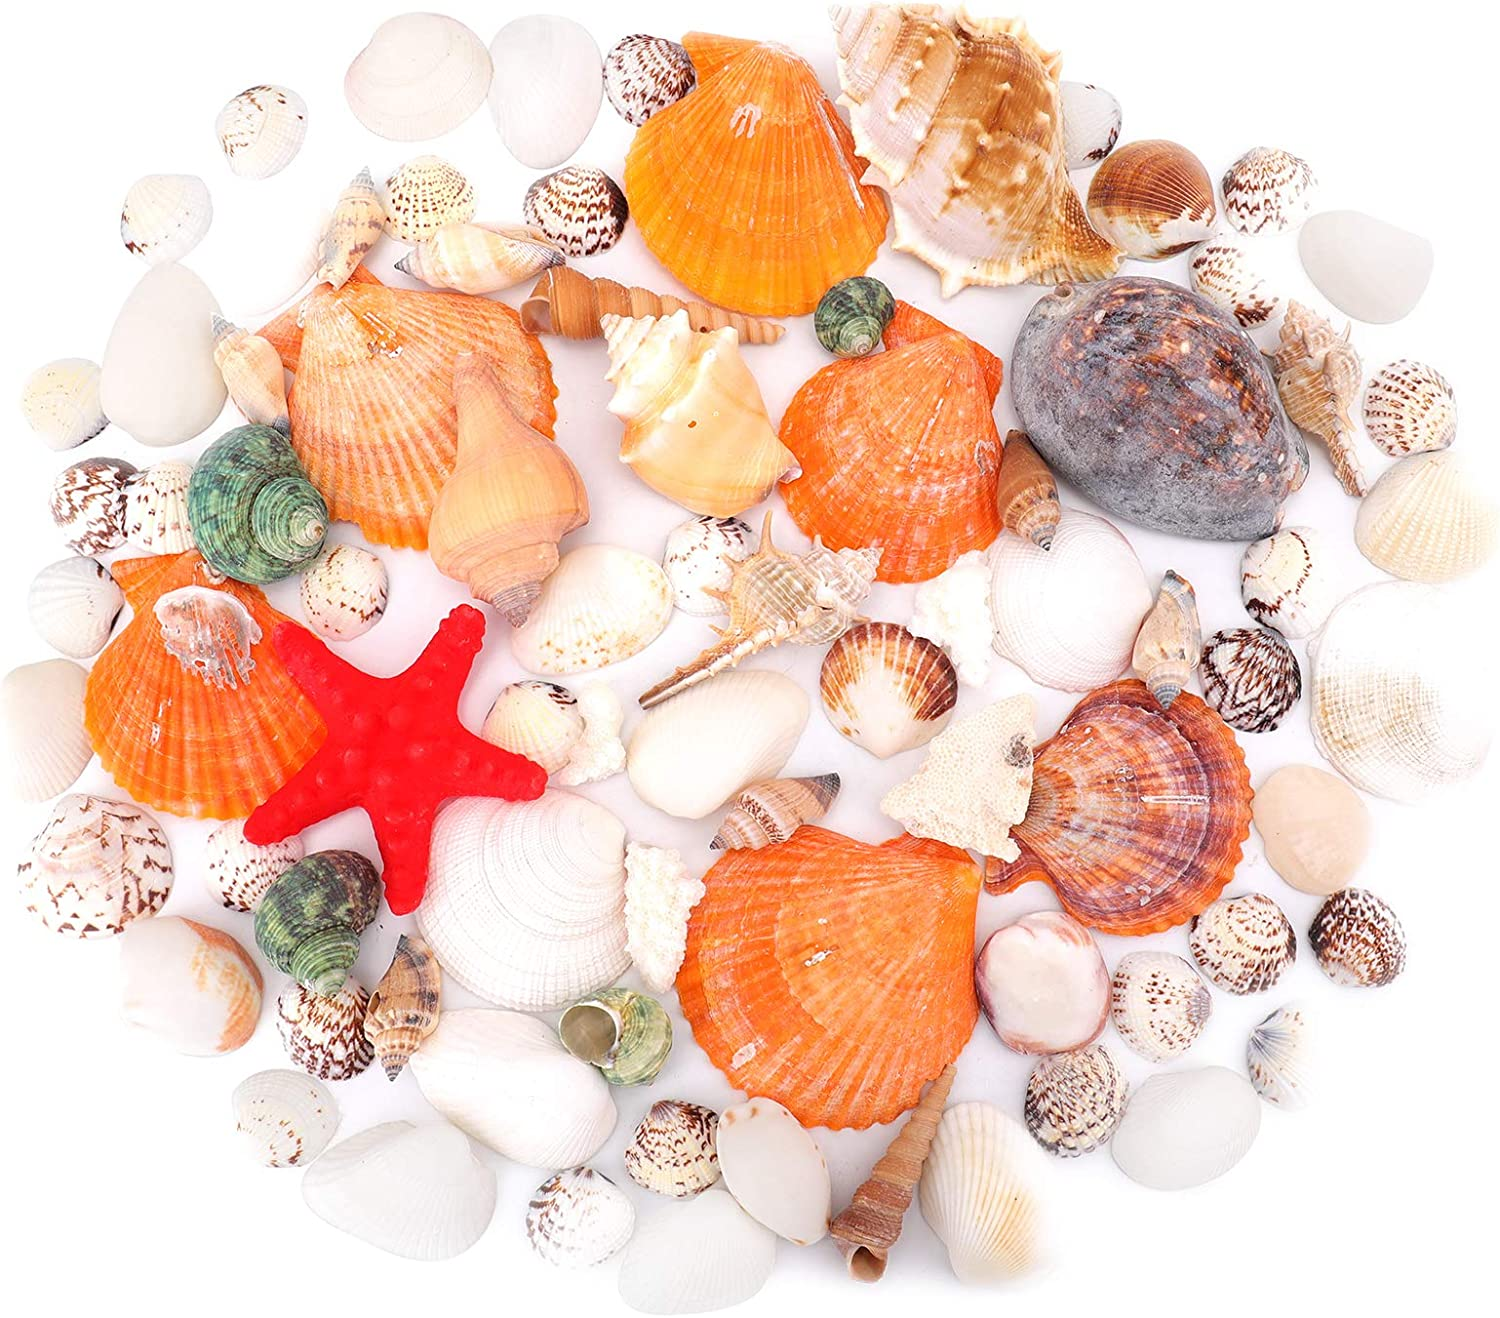 yarlung 120 Pieces Large Sea Shell Conch Starfish, Mixed Beach Seashells Colorful Natural Seashells Supplies for Fish Tank, Beach Theme Party, Candle Making, Wedding Decor, DIY Crafts